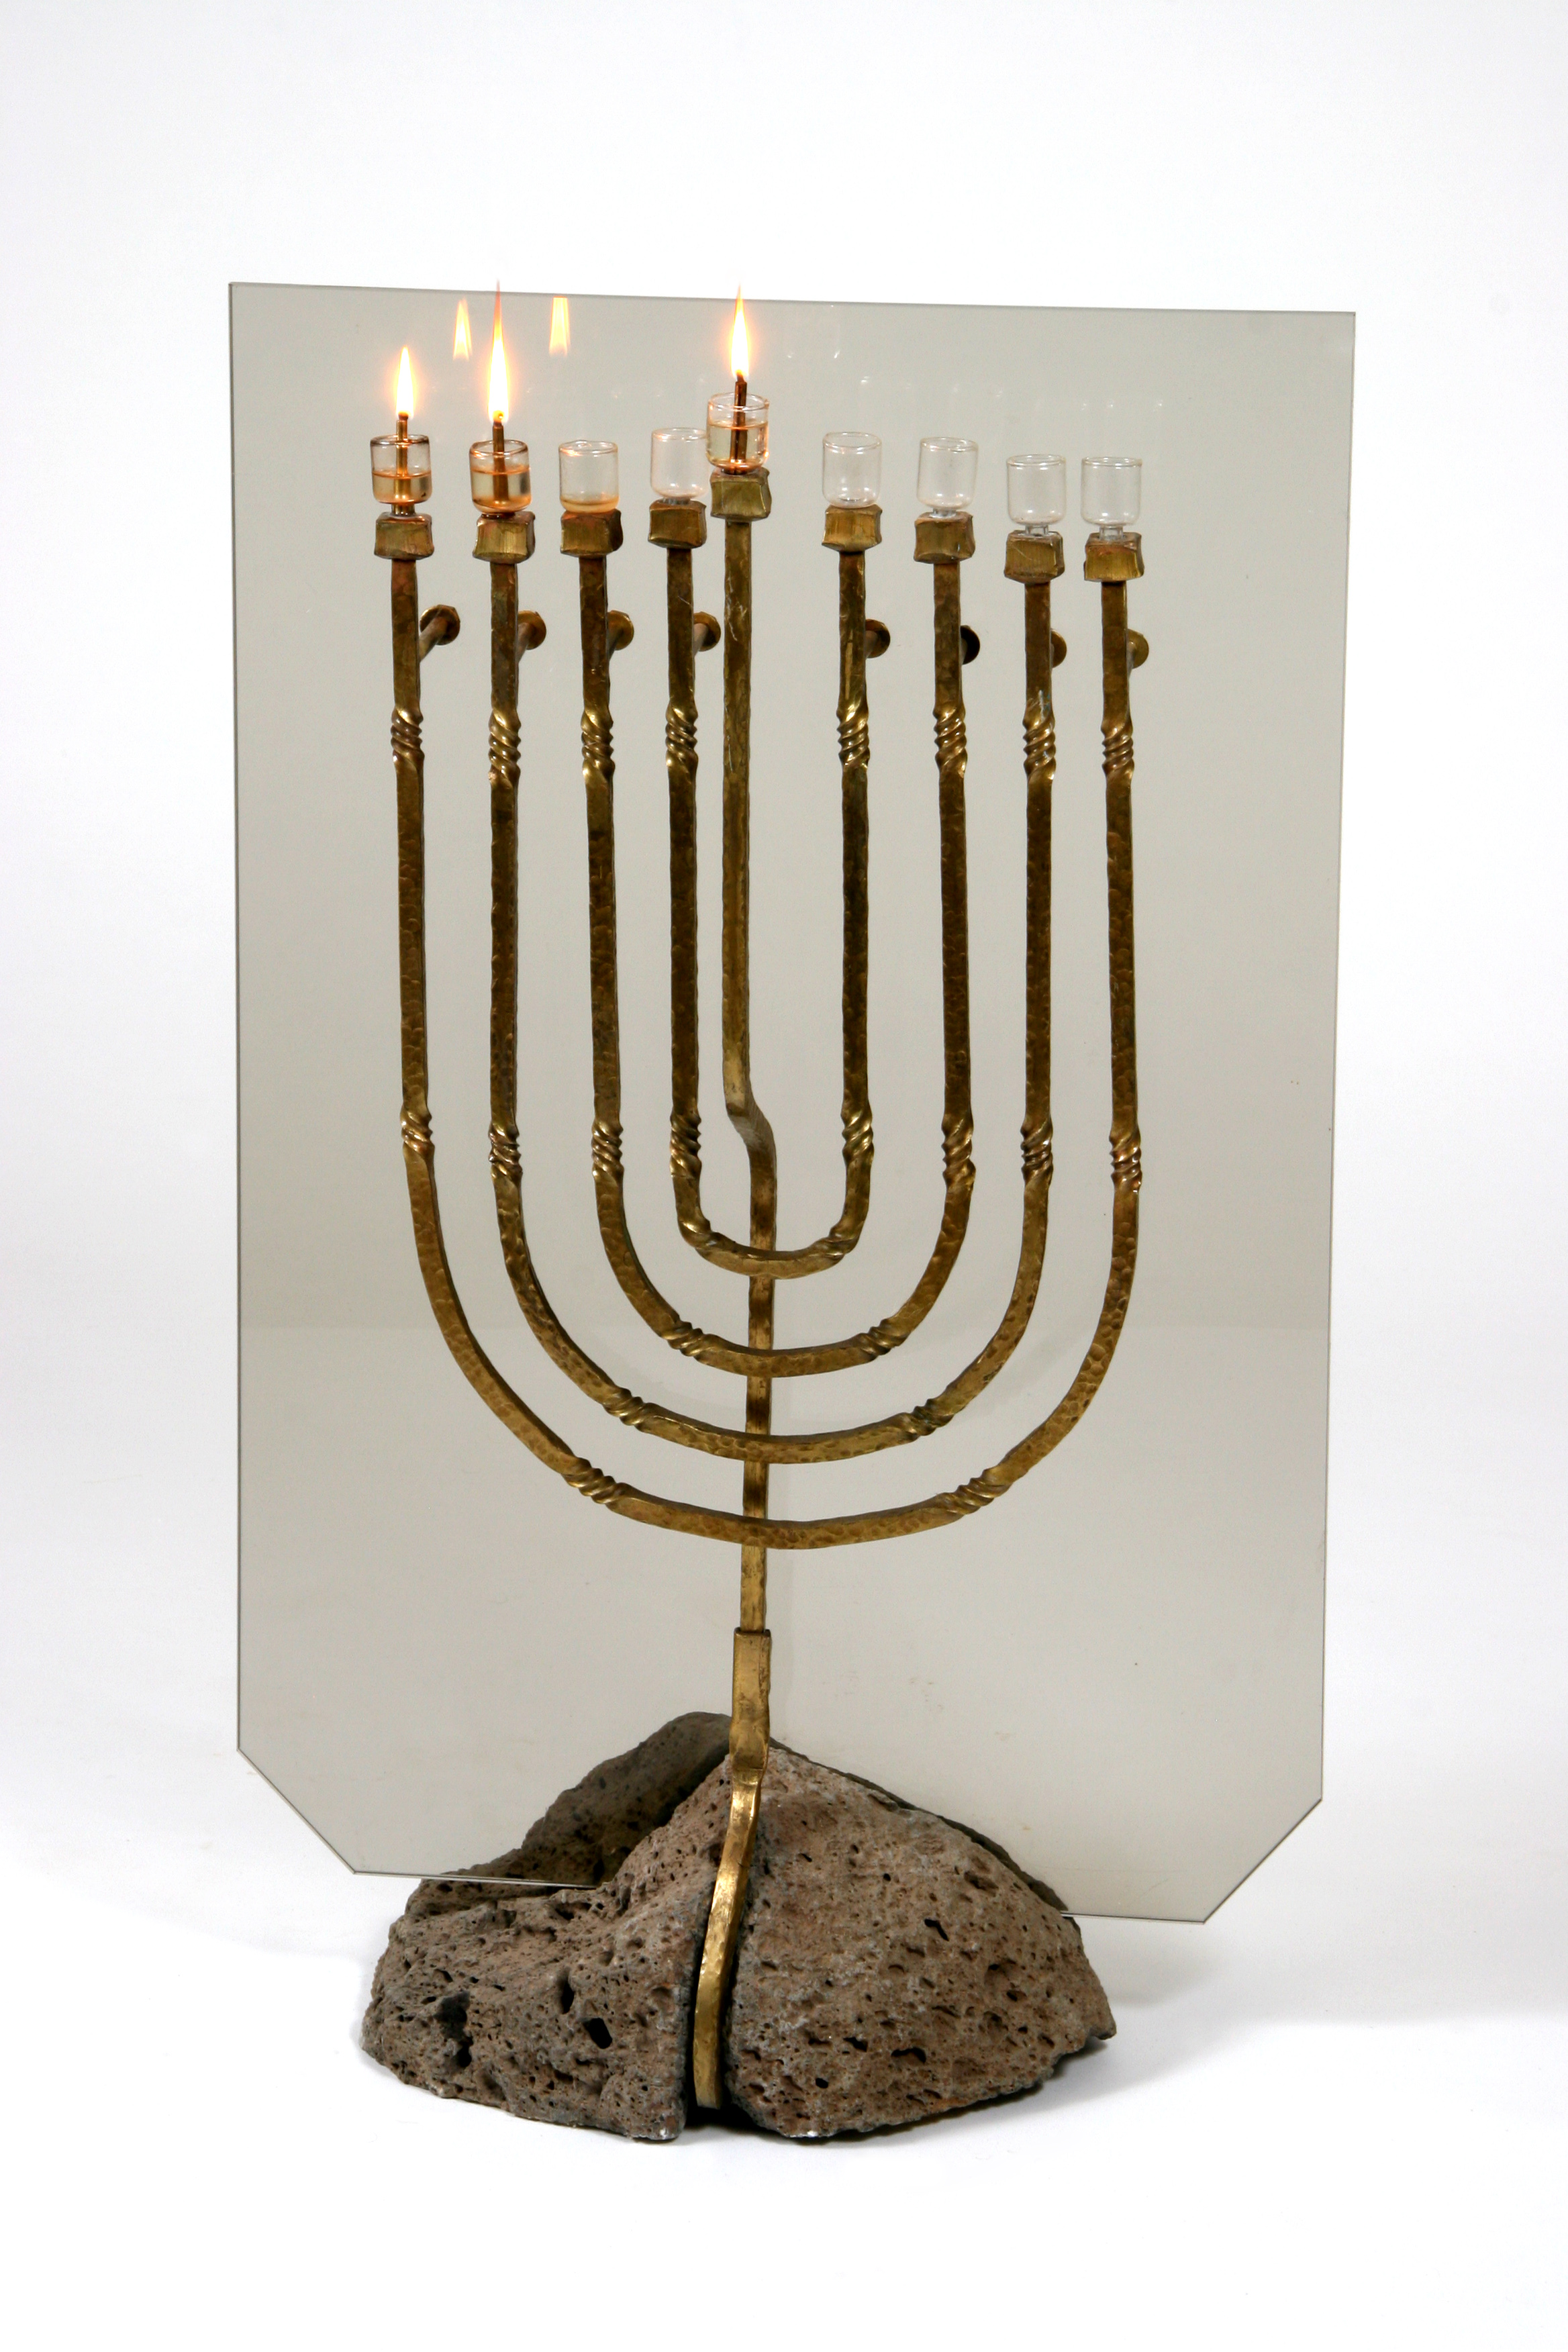 'Royalty' - Elegant Hannukah Menorah of Bronze, Basalt & Golden Glass